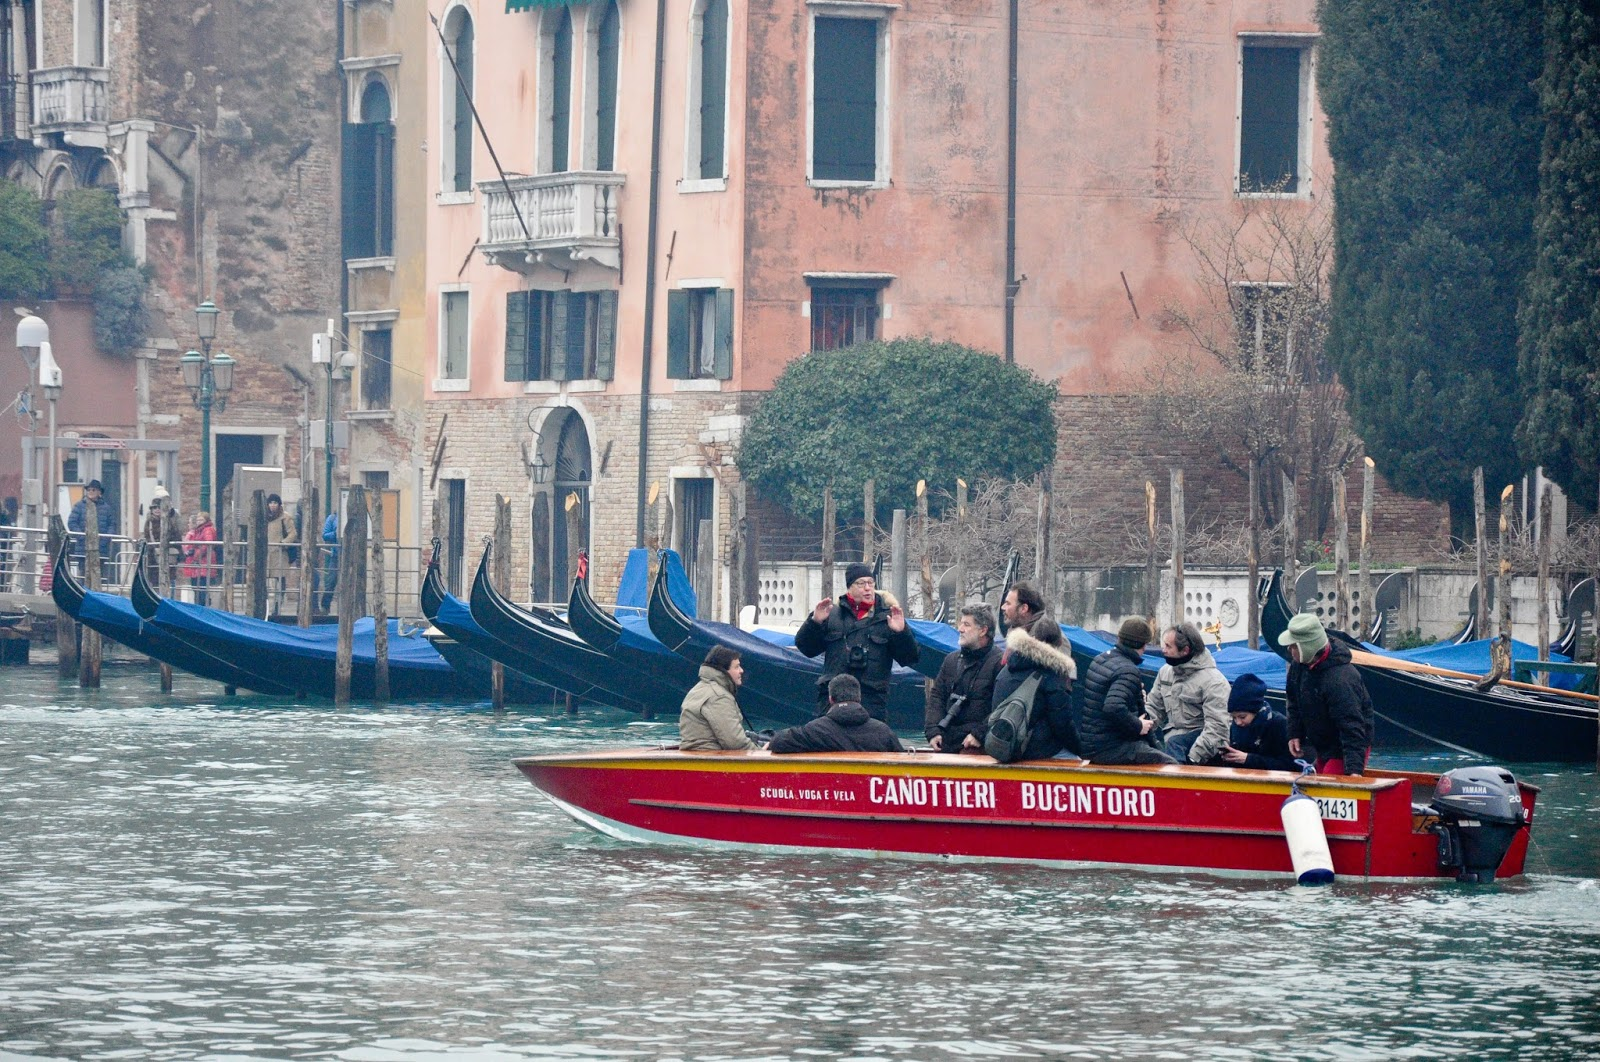 Press boat, Befana race, Venice, Italy